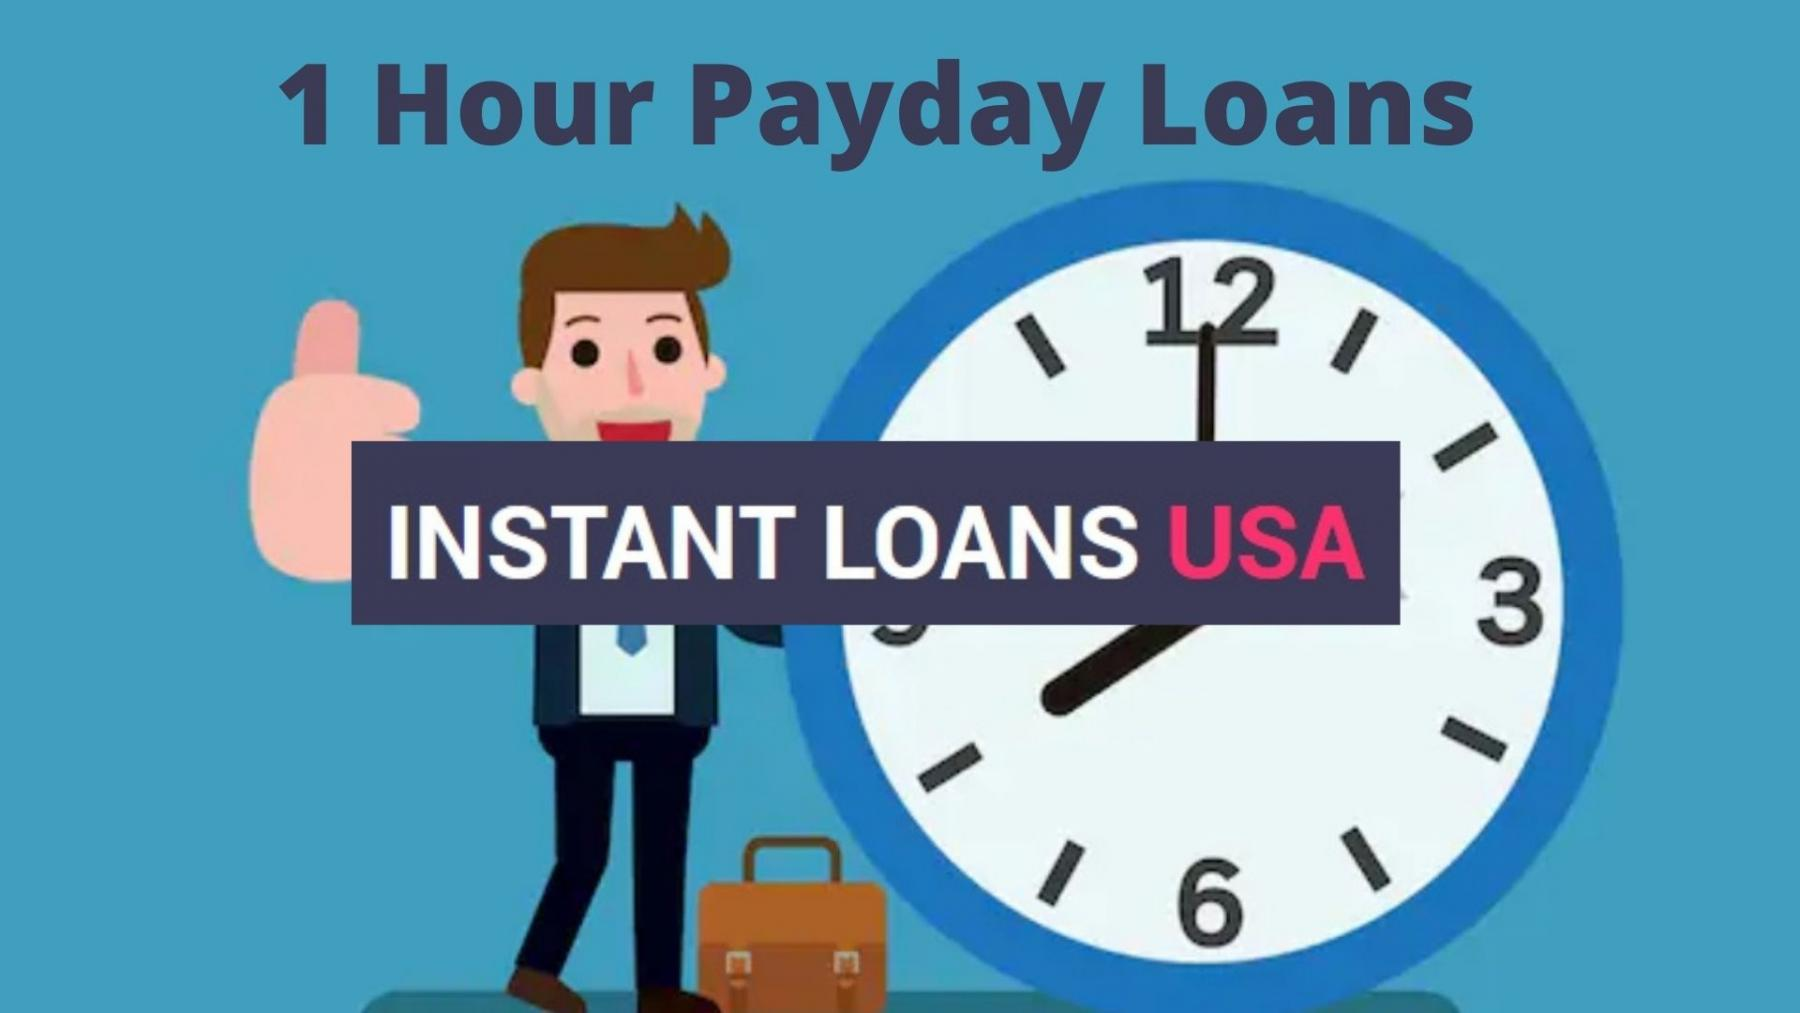 1 Hour Payday Loan